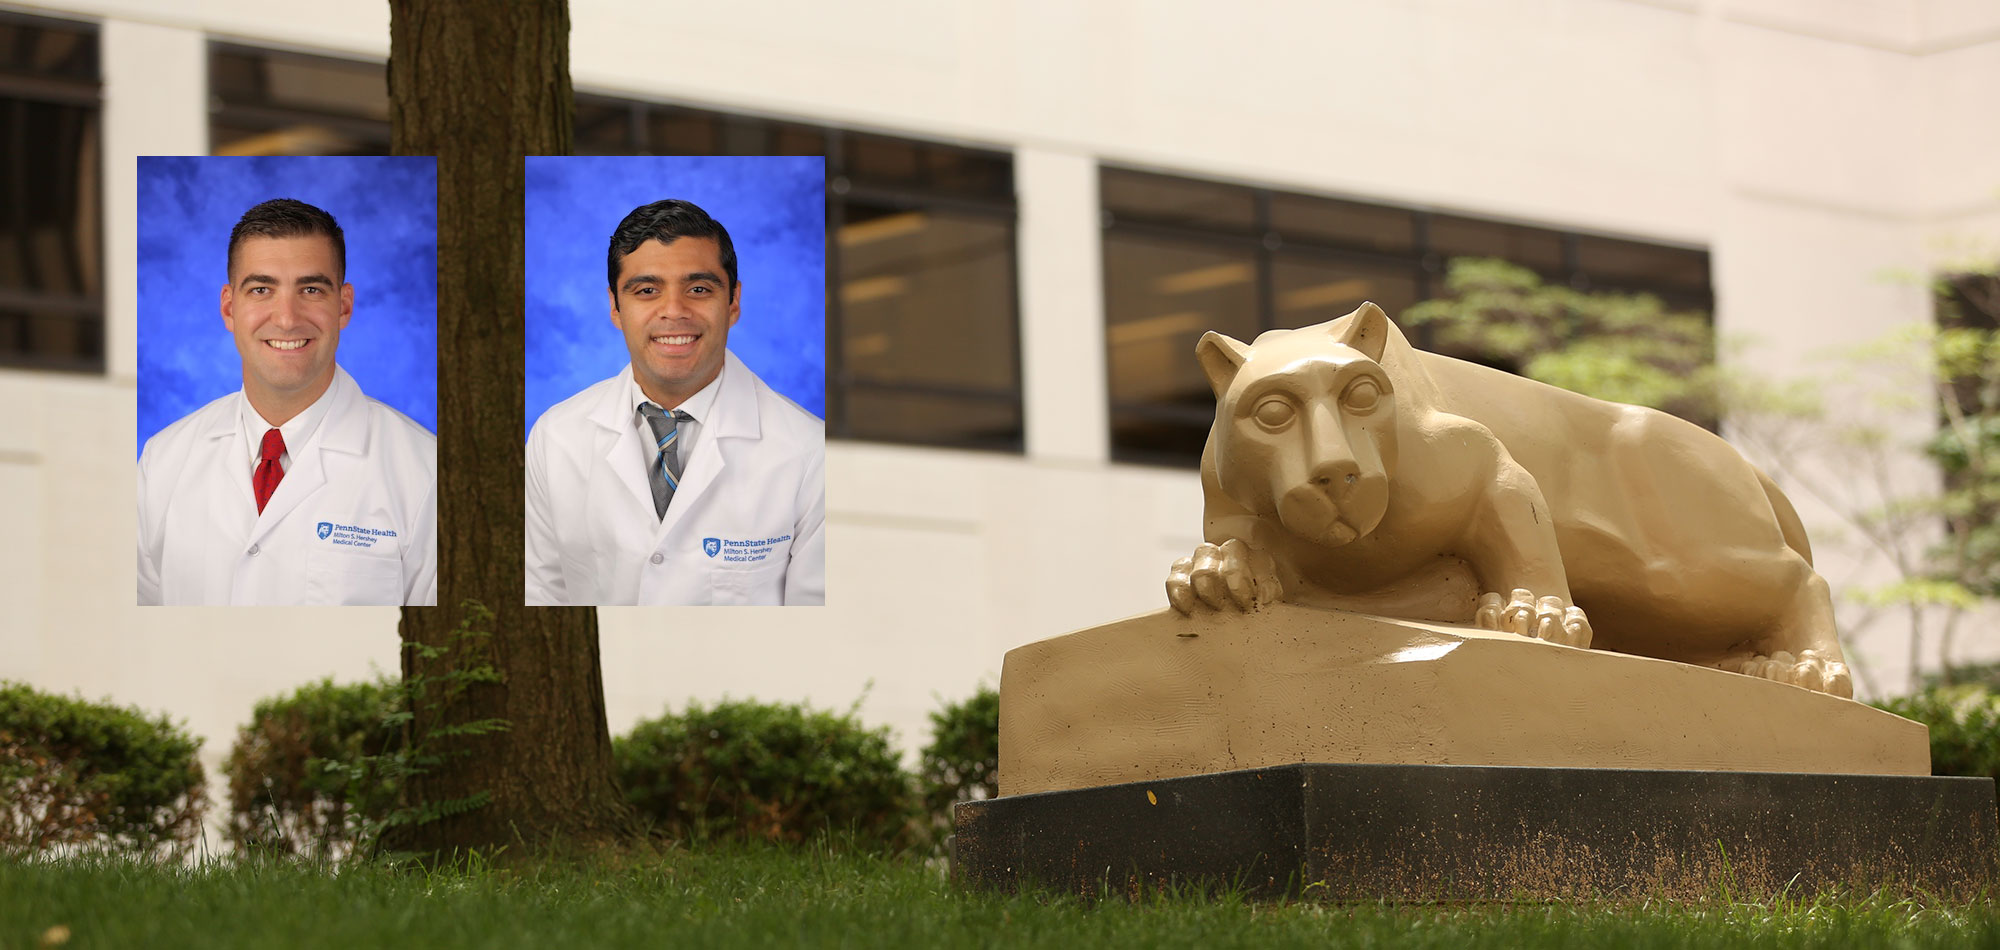 New PGY-1 trainees welcomed in Plastic Surgery Residency